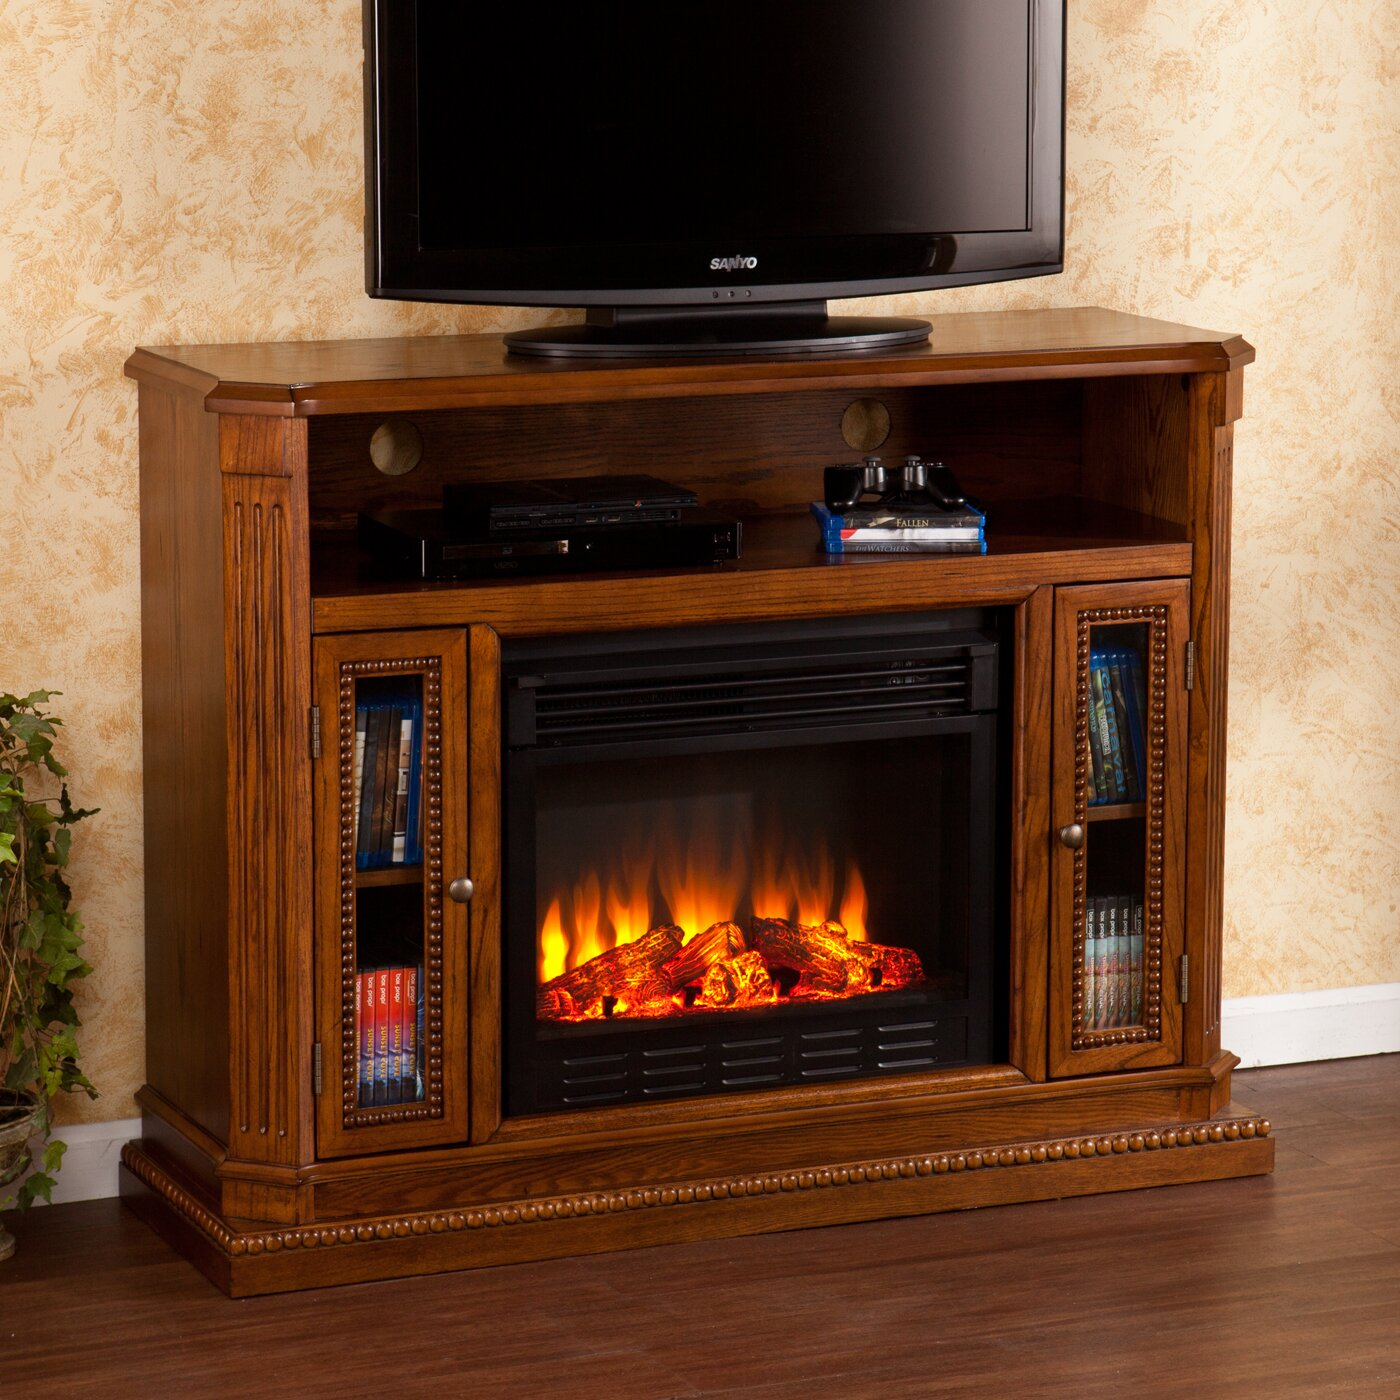 wildon home delaney tv stand with electric fireplace reviews wayfair. Black Bedroom Furniture Sets. Home Design Ideas